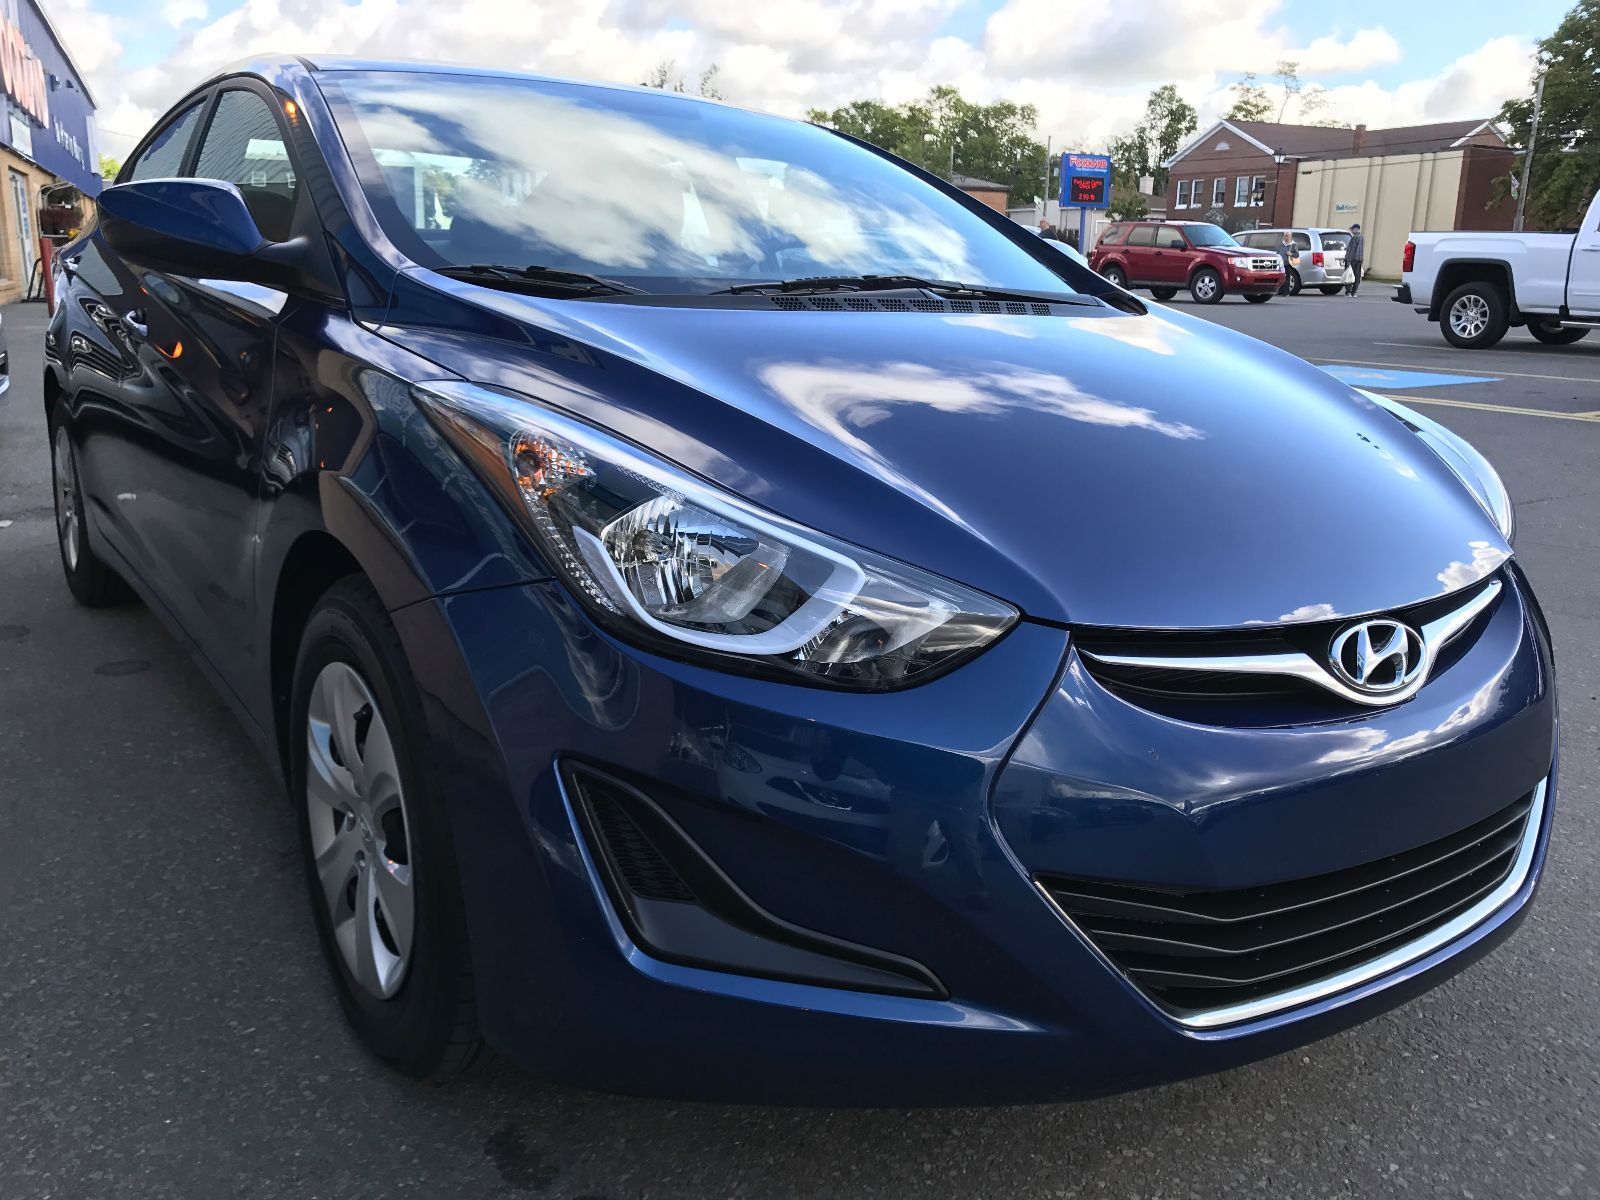 inventory autoplex for elantra sales in trading united car used sale hyundai